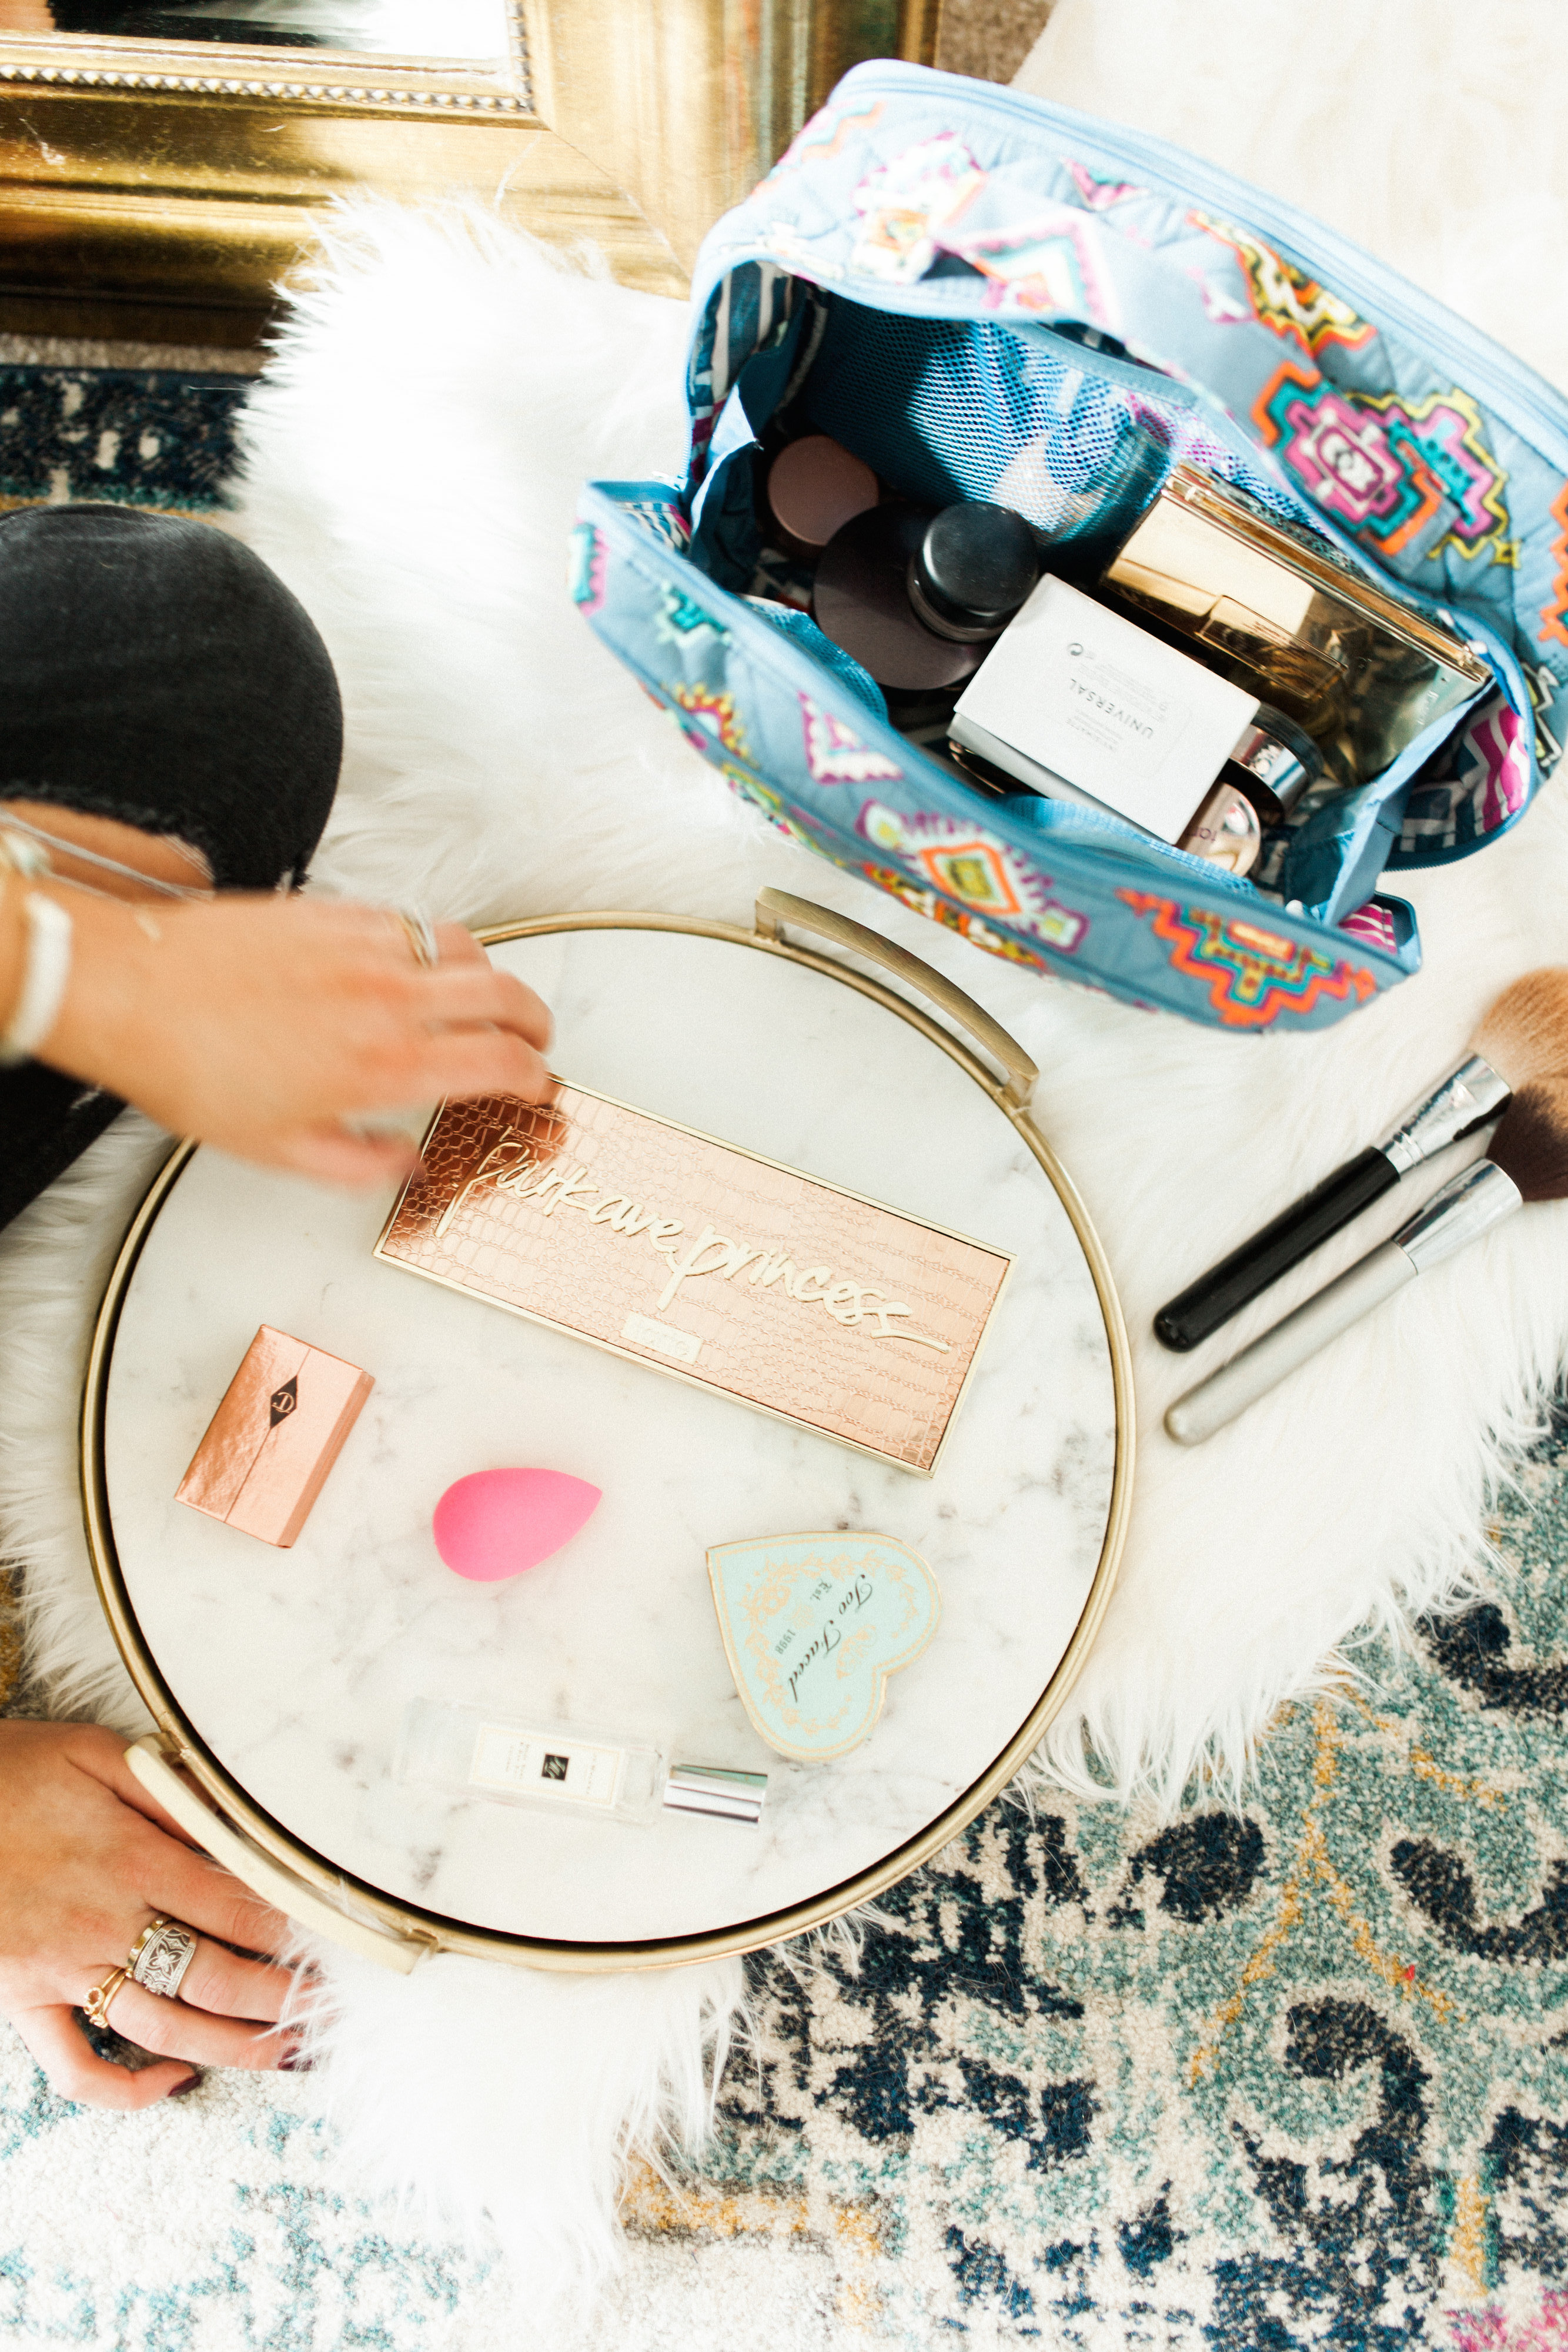 My Makeup Routine / What's in my makeup bag